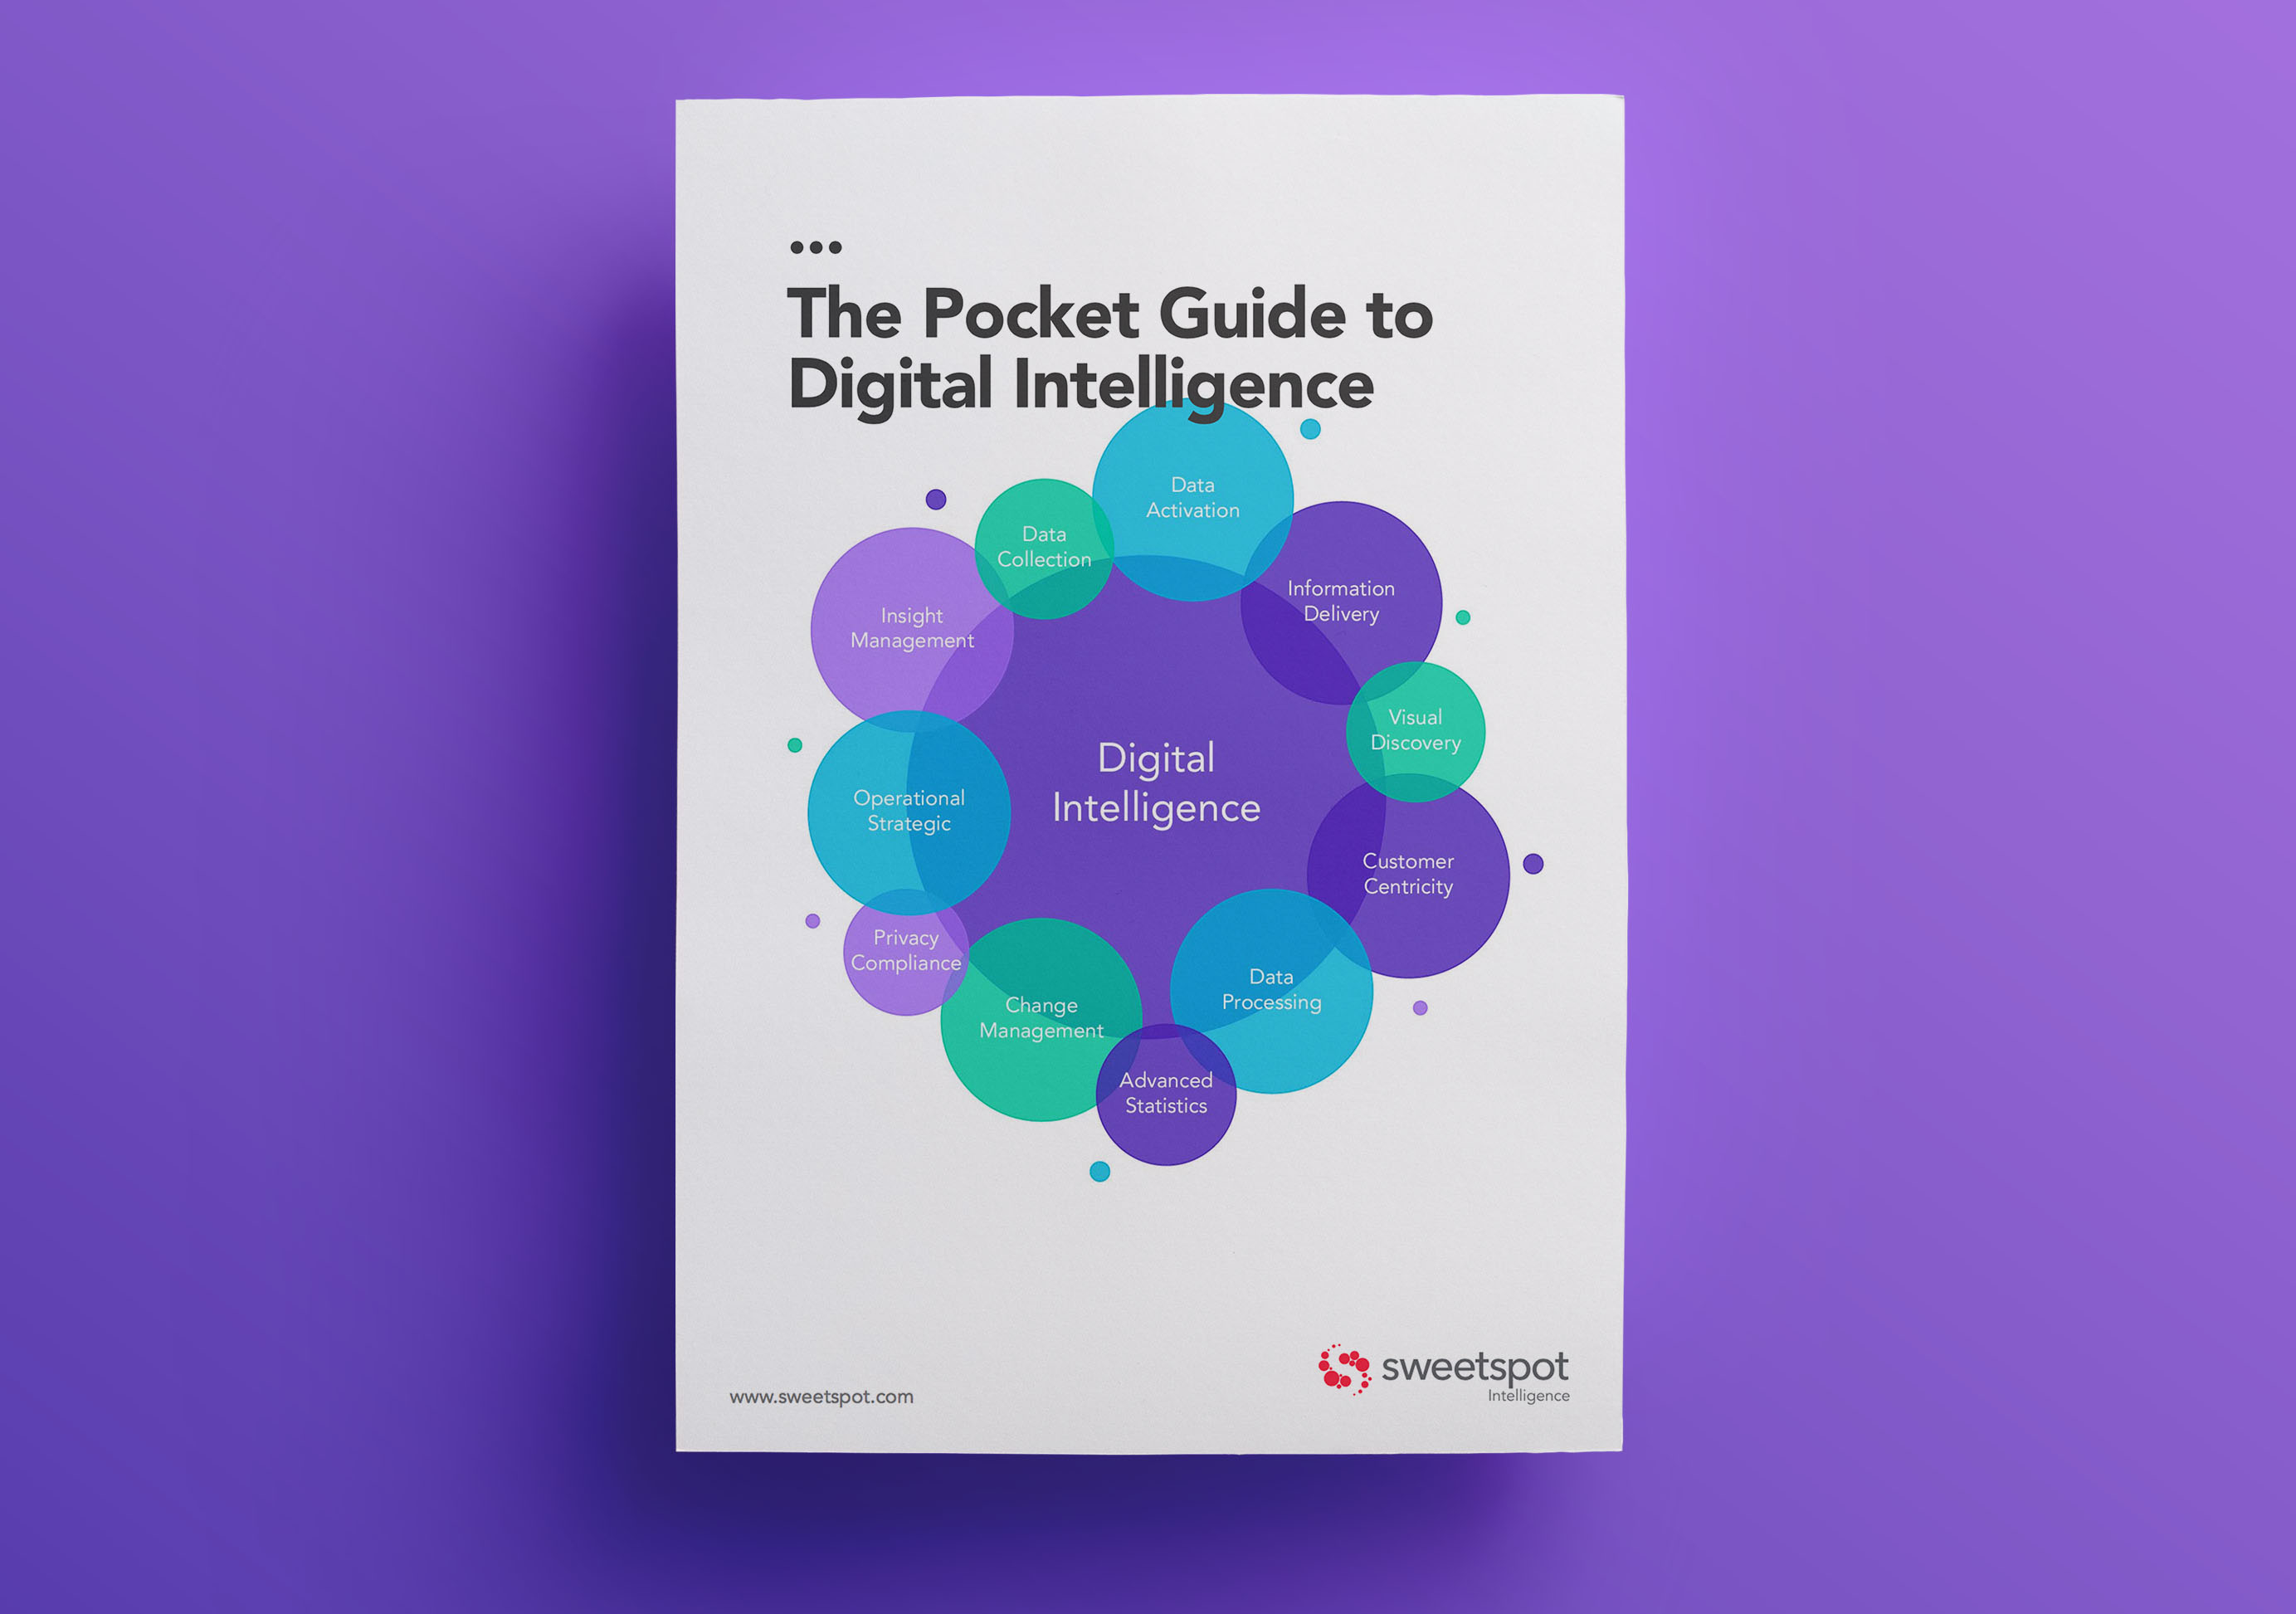 Sweetspot 2017 Pocket Guide to Digital Intelligence